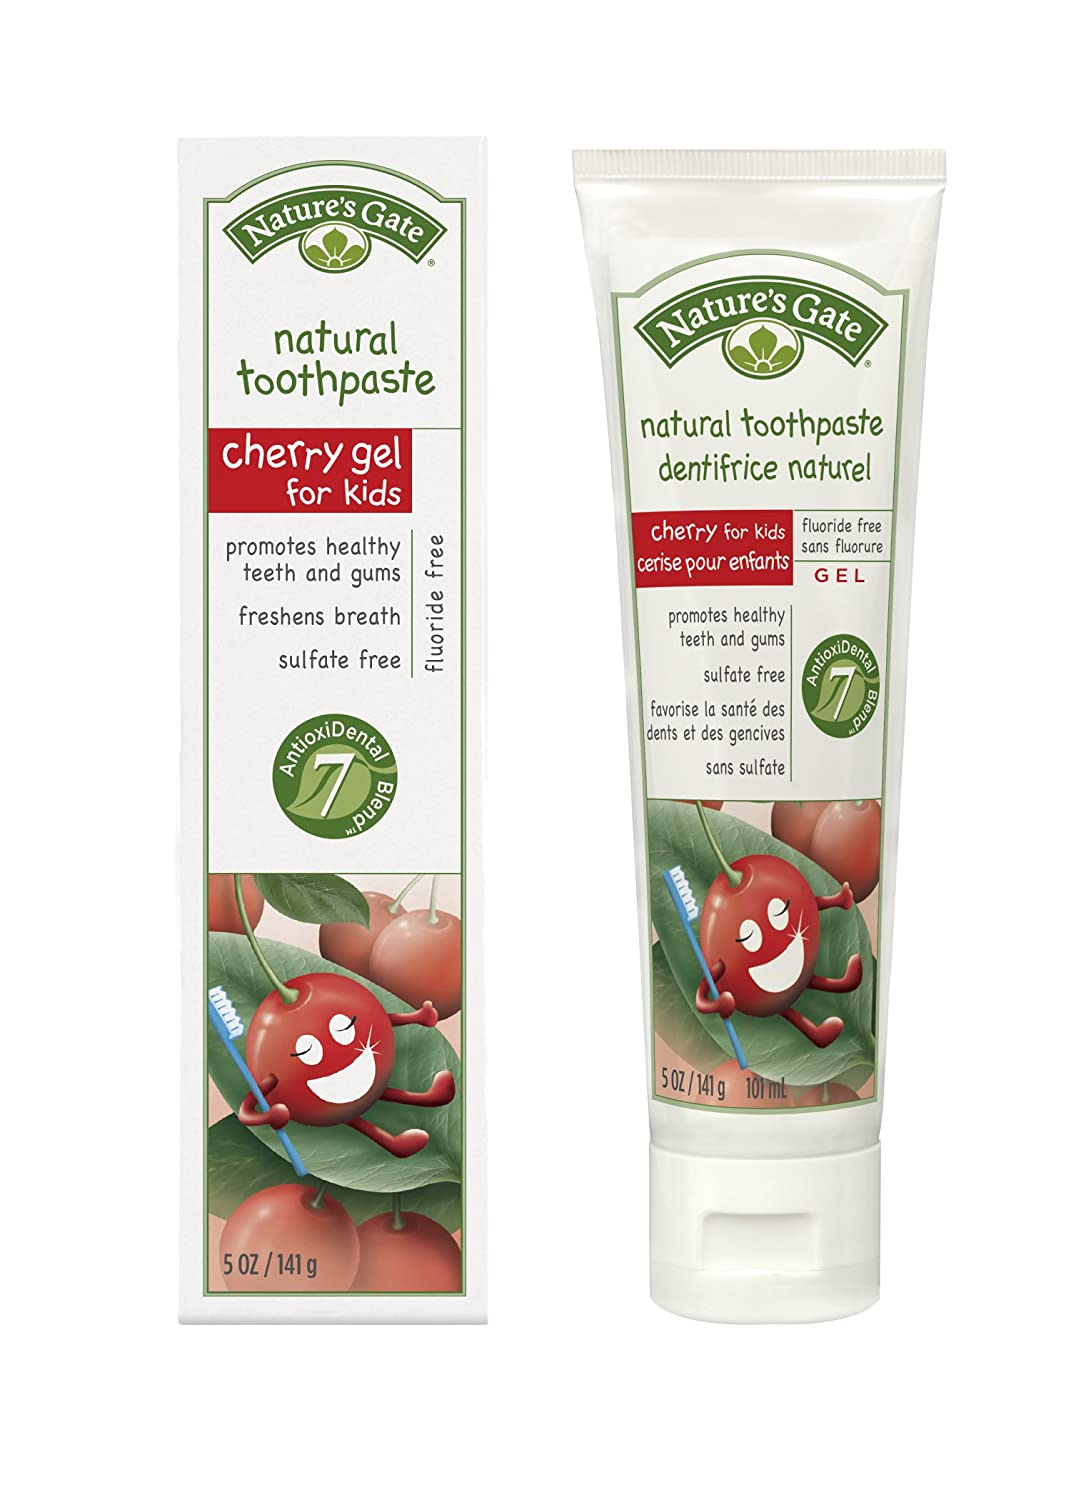 Nature's Gate Natural Toothpaste without Fluoride, Cherry Gel, 5 oz (141 g) (Pack of 4)